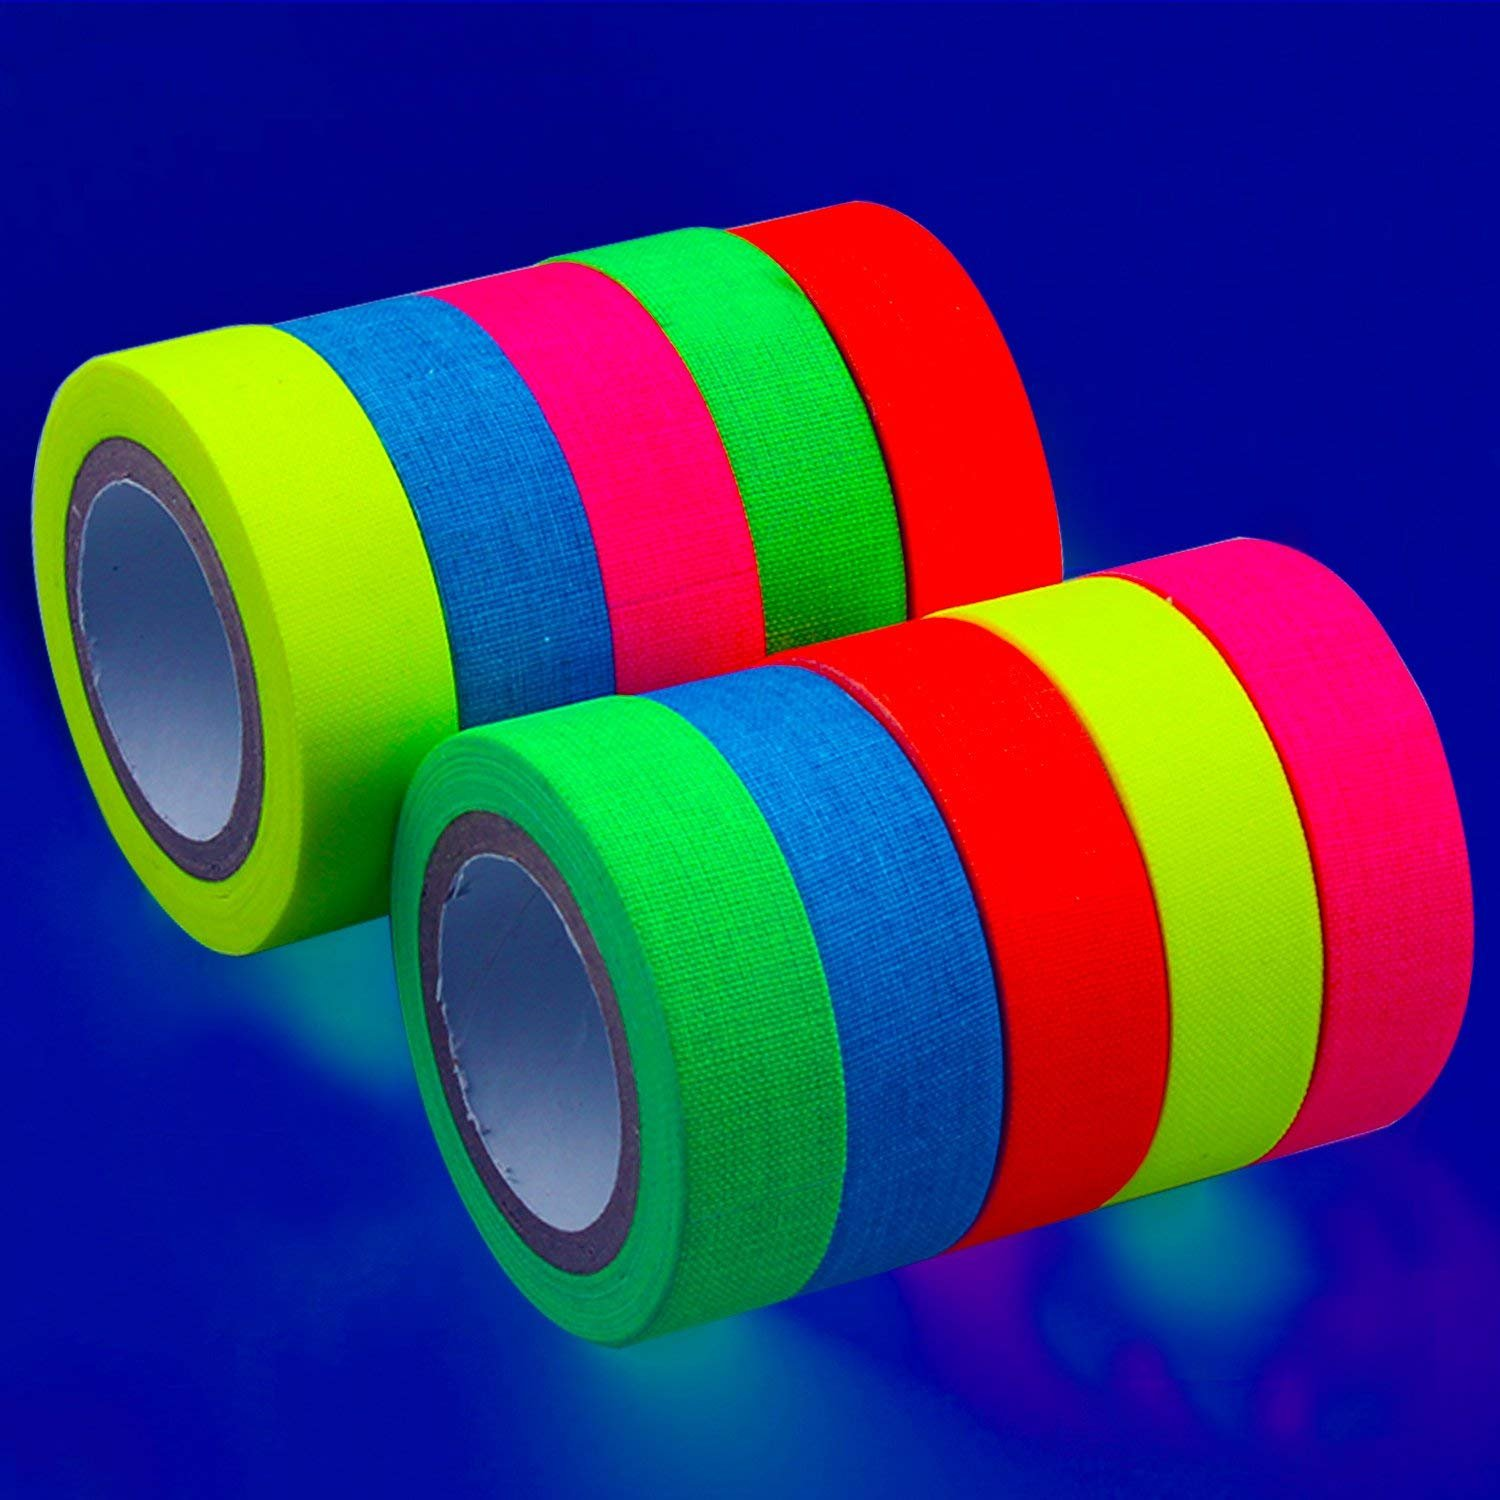 UV Blacklight Tape - Neon Gaffer Cloth Tape (Matte Finish)- 10-Pack - 164 Feet Total (0.59 in x 16.4 ft Per Roll) - Reactive Fluorescent Tape - Neon Blacklight Tape - Multicolor